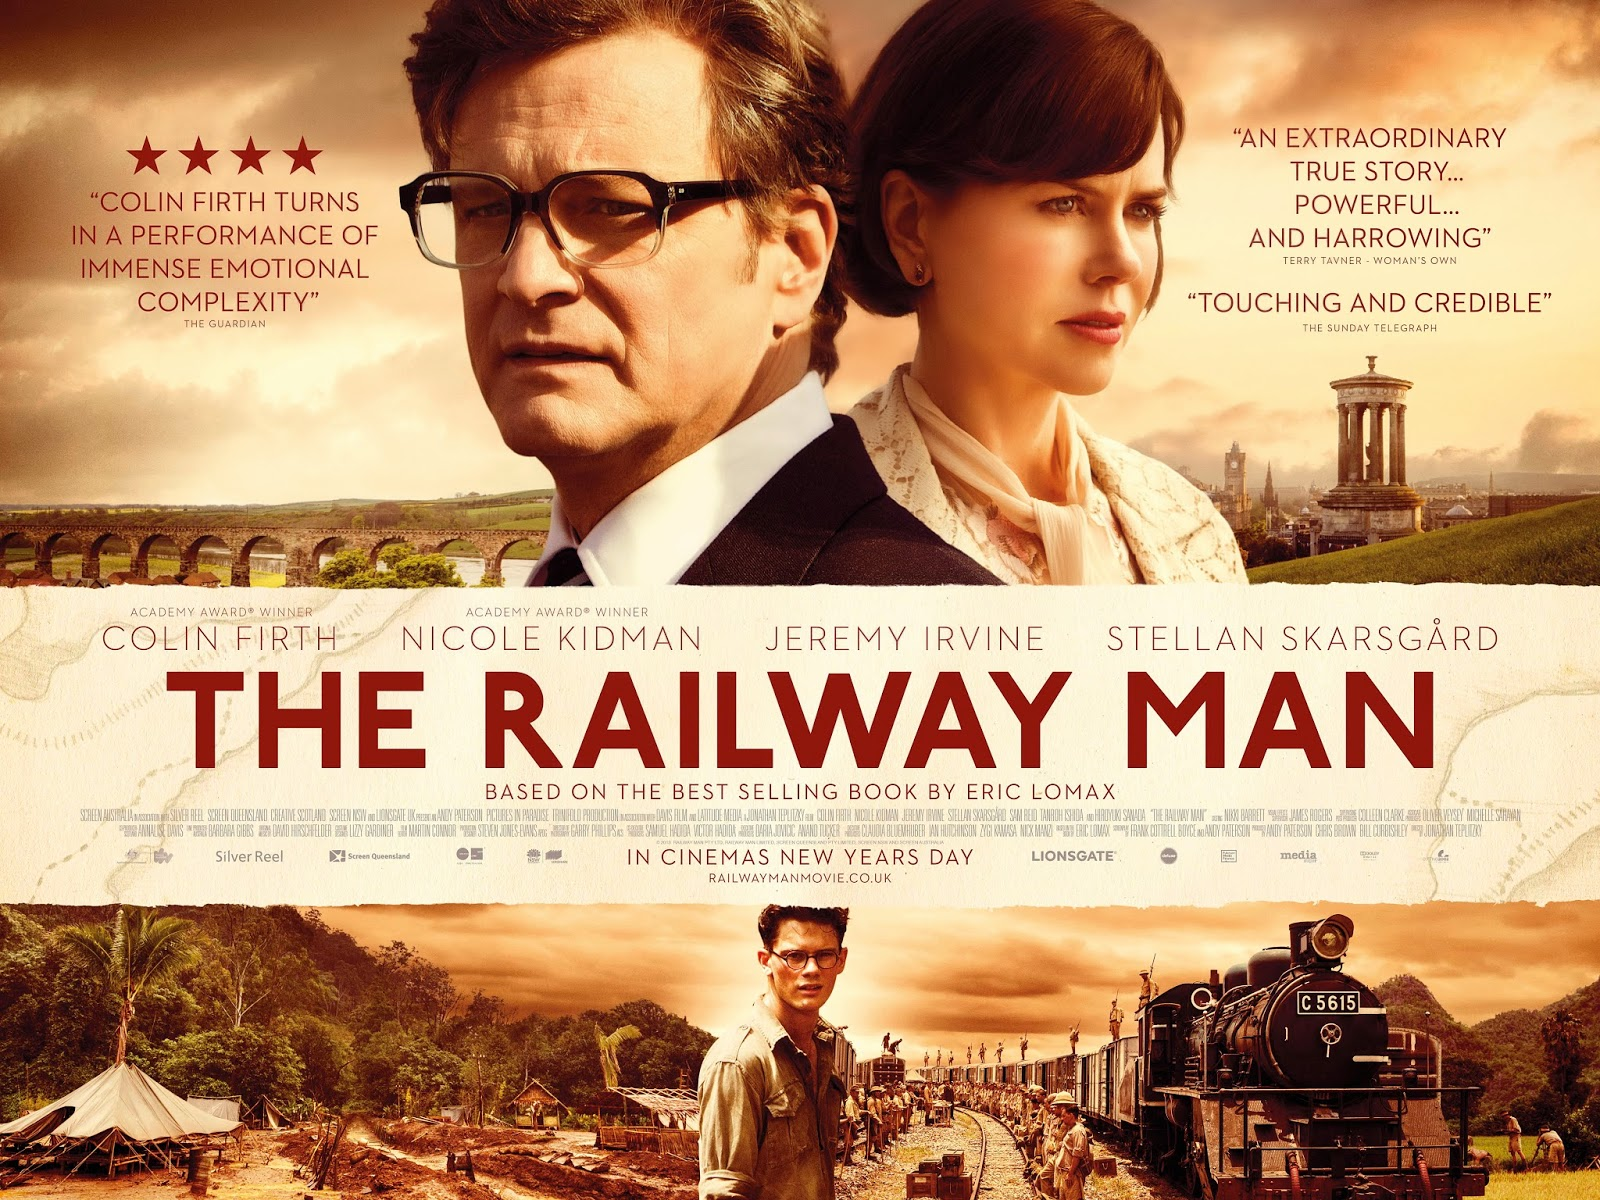 The Railway Man movie review 2014